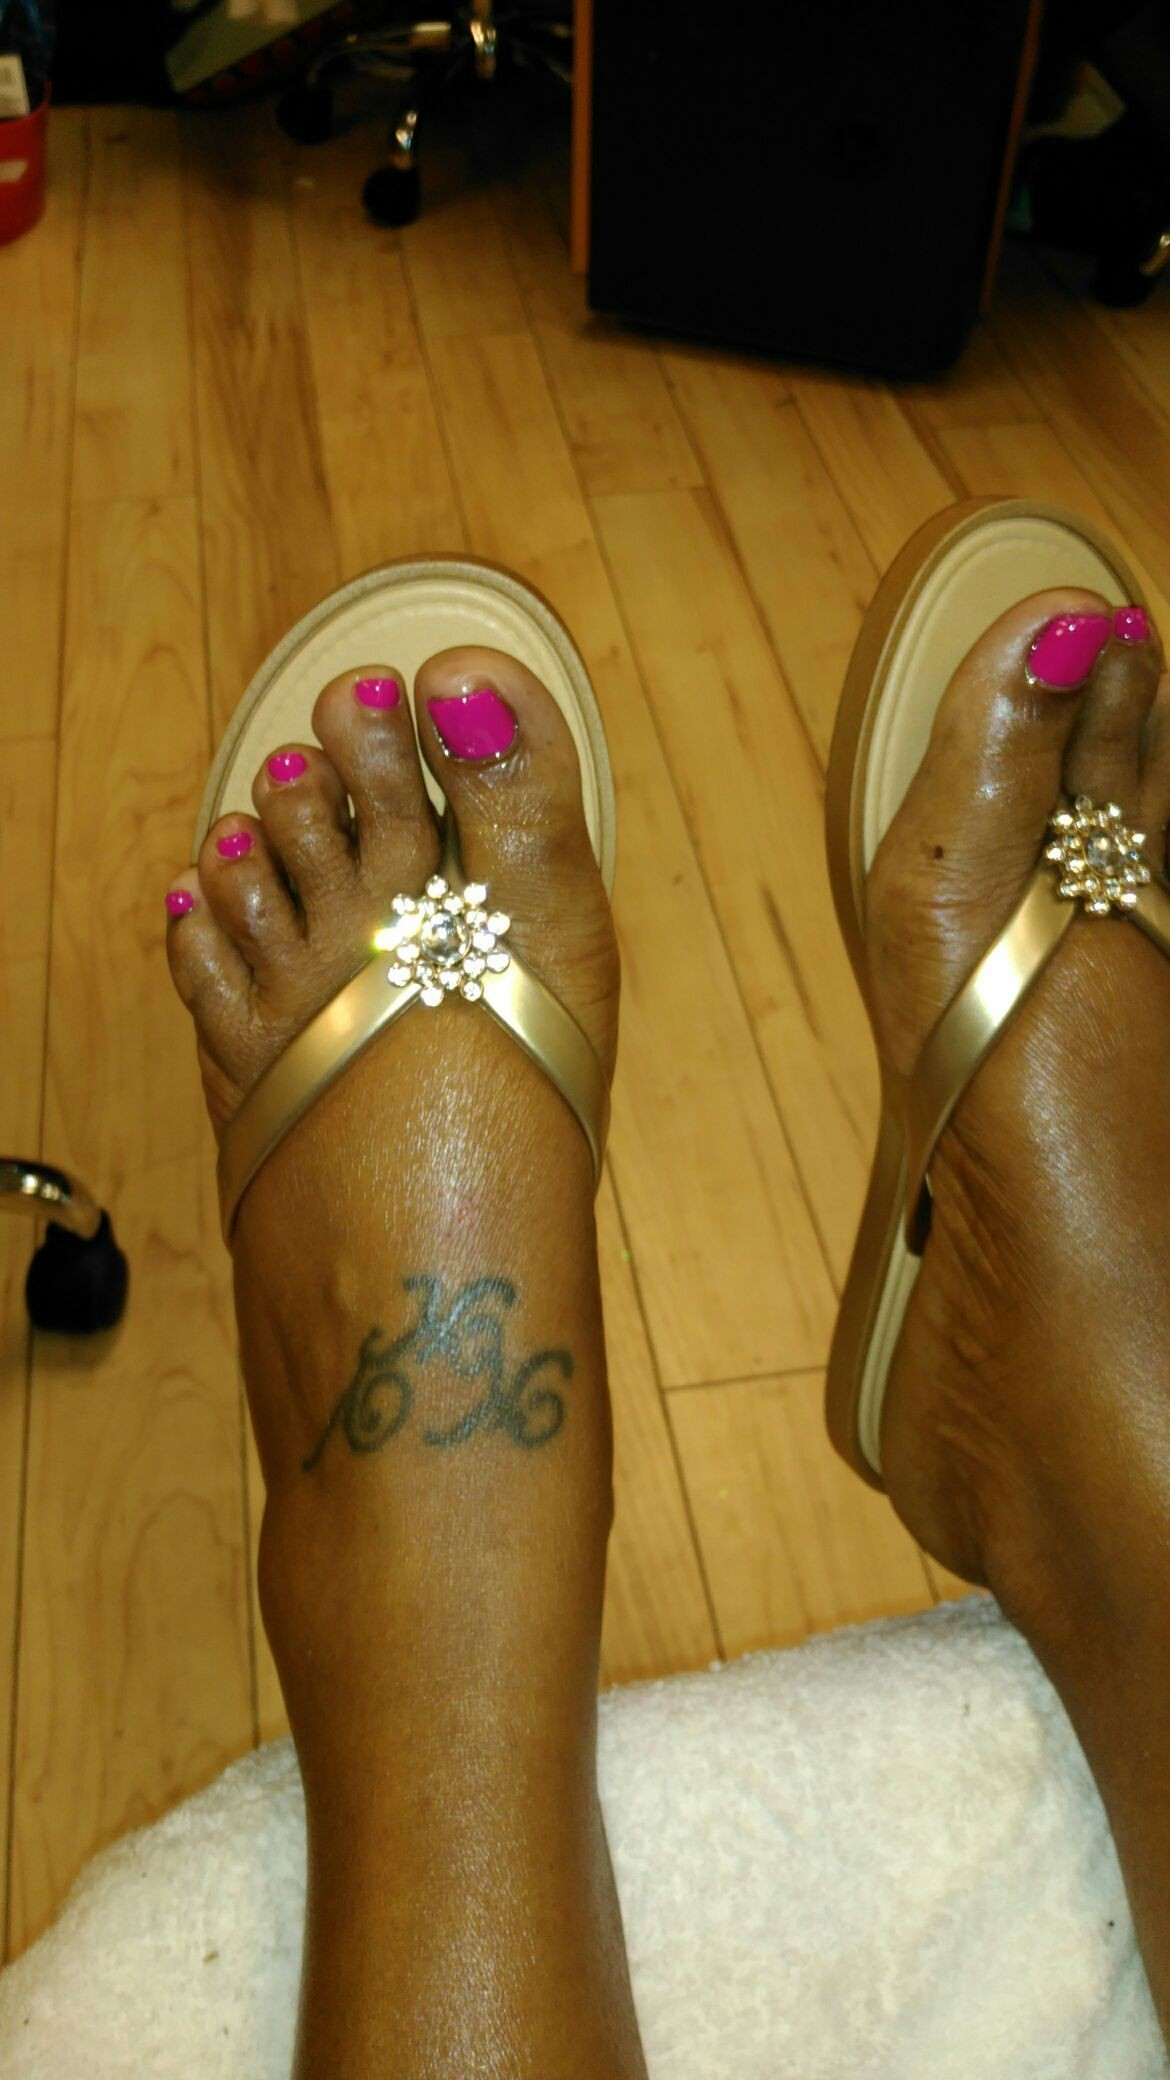 Thank u so much Ms. Ggh Murry for getting your #toes done with #ThaPolishQueen today! #ComeSeeMe #PrettyGurlsFeet #CleanBlackMasterNailTech #IDoNotRush #ITakeMyTime #UrMoneyWillBeWellSpent #UrToesMustBePerfectBeforeYouLeave #ComeExperienceMyHomemadeScrub #SpaologyNailSpa #ISupportBlackOwnedBusinesses Spaology Nail Spa & More 3000 Kavanaugh Blvd, Ste. C LR, AR 72205 To book your appointment email me @ PrettyGurlsFeet@gmail.com or call me at the salon @ 501.265.0303 or to book directly and purchase your service... Go to my website @ me on IG: @ms_beautiful_feet #ImWaitingOnYou